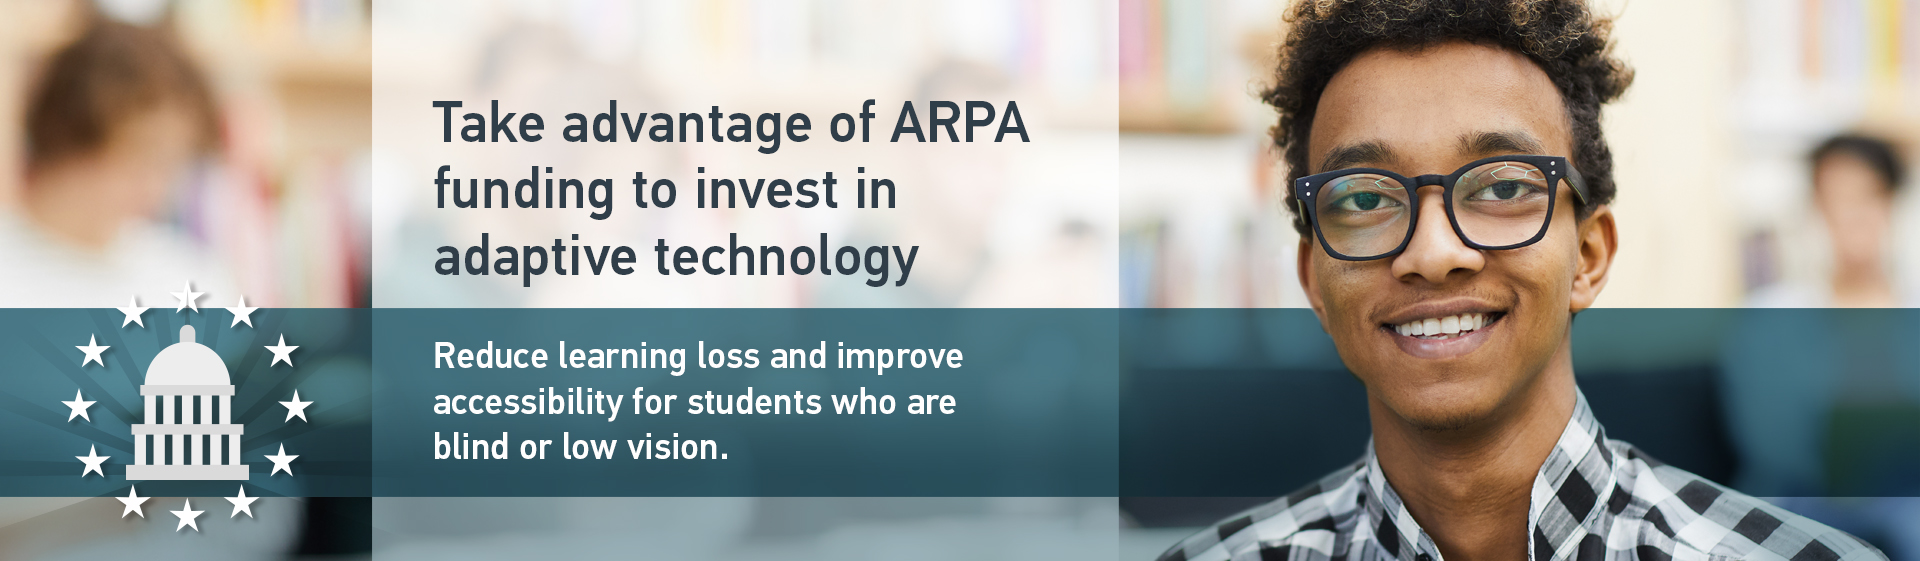 Take advantage of ARPA funding to invest in adaptive technology - Reduce learning loss and improve accessibility for students who are blind or low vision